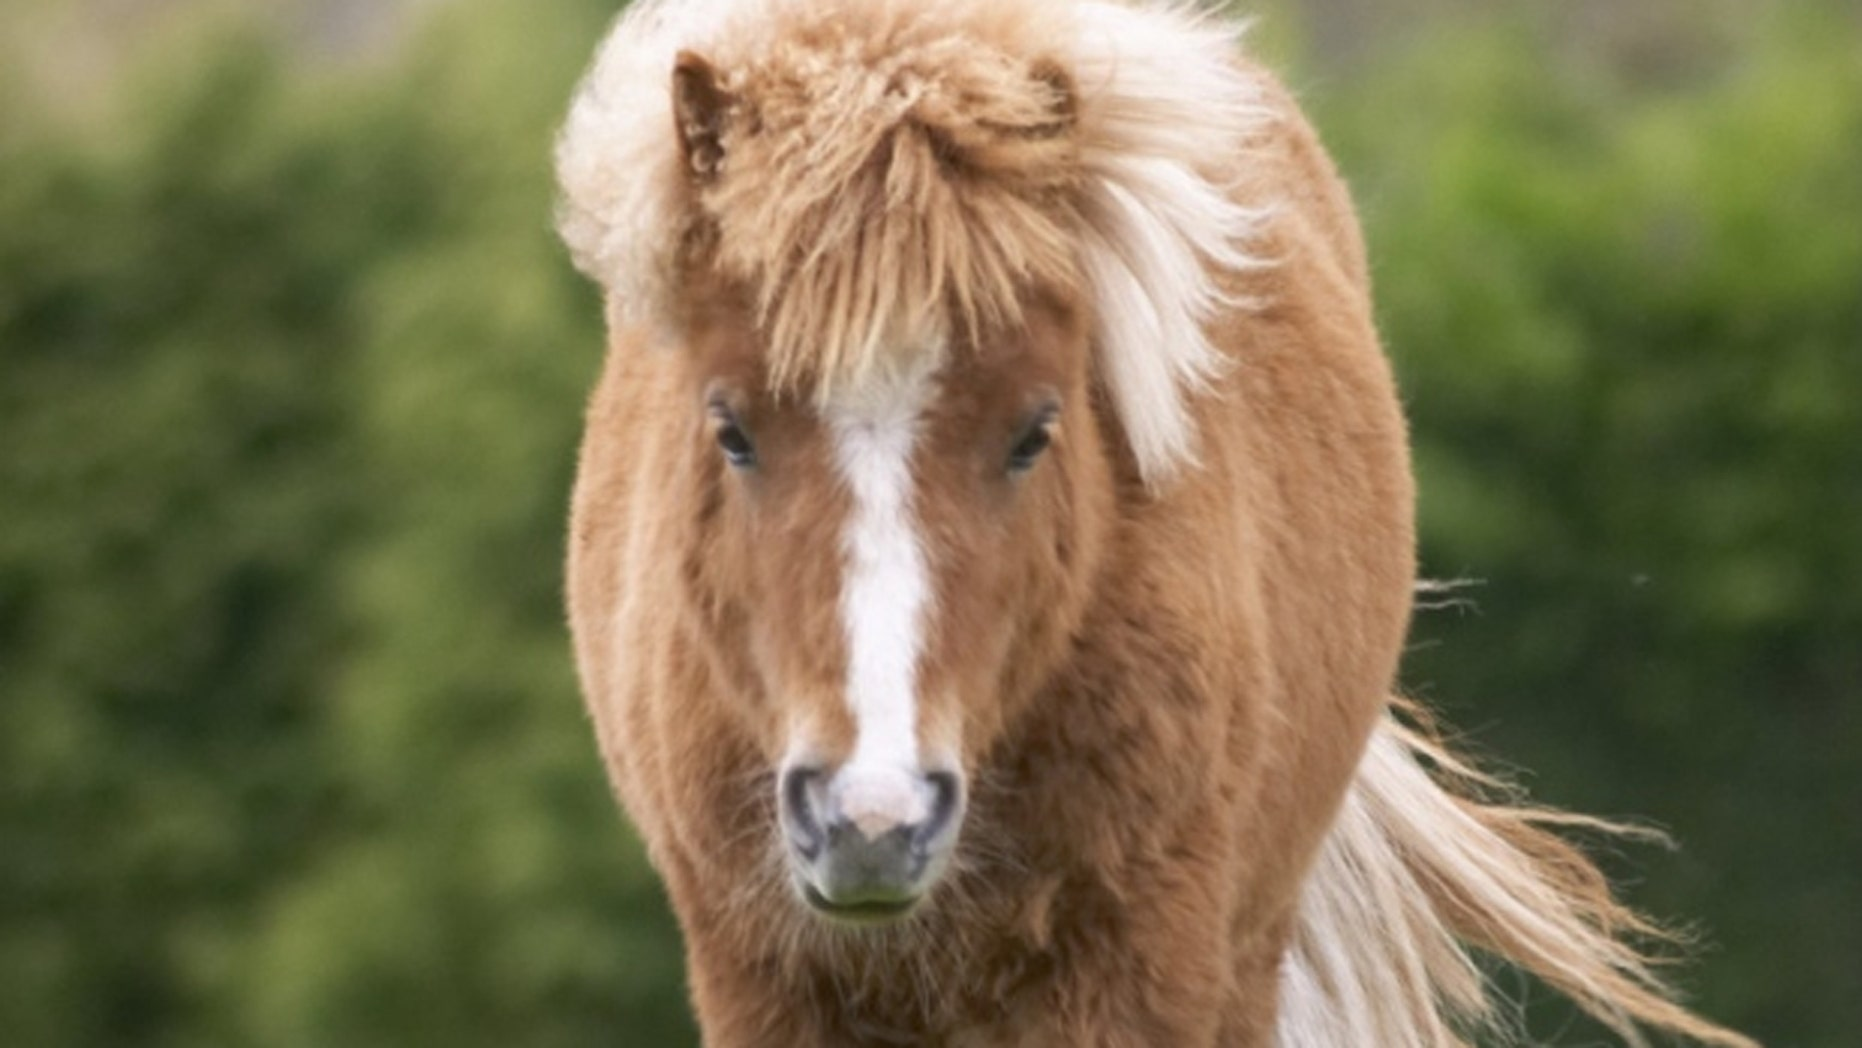 A pony like this was left at reception at a Travelodge.